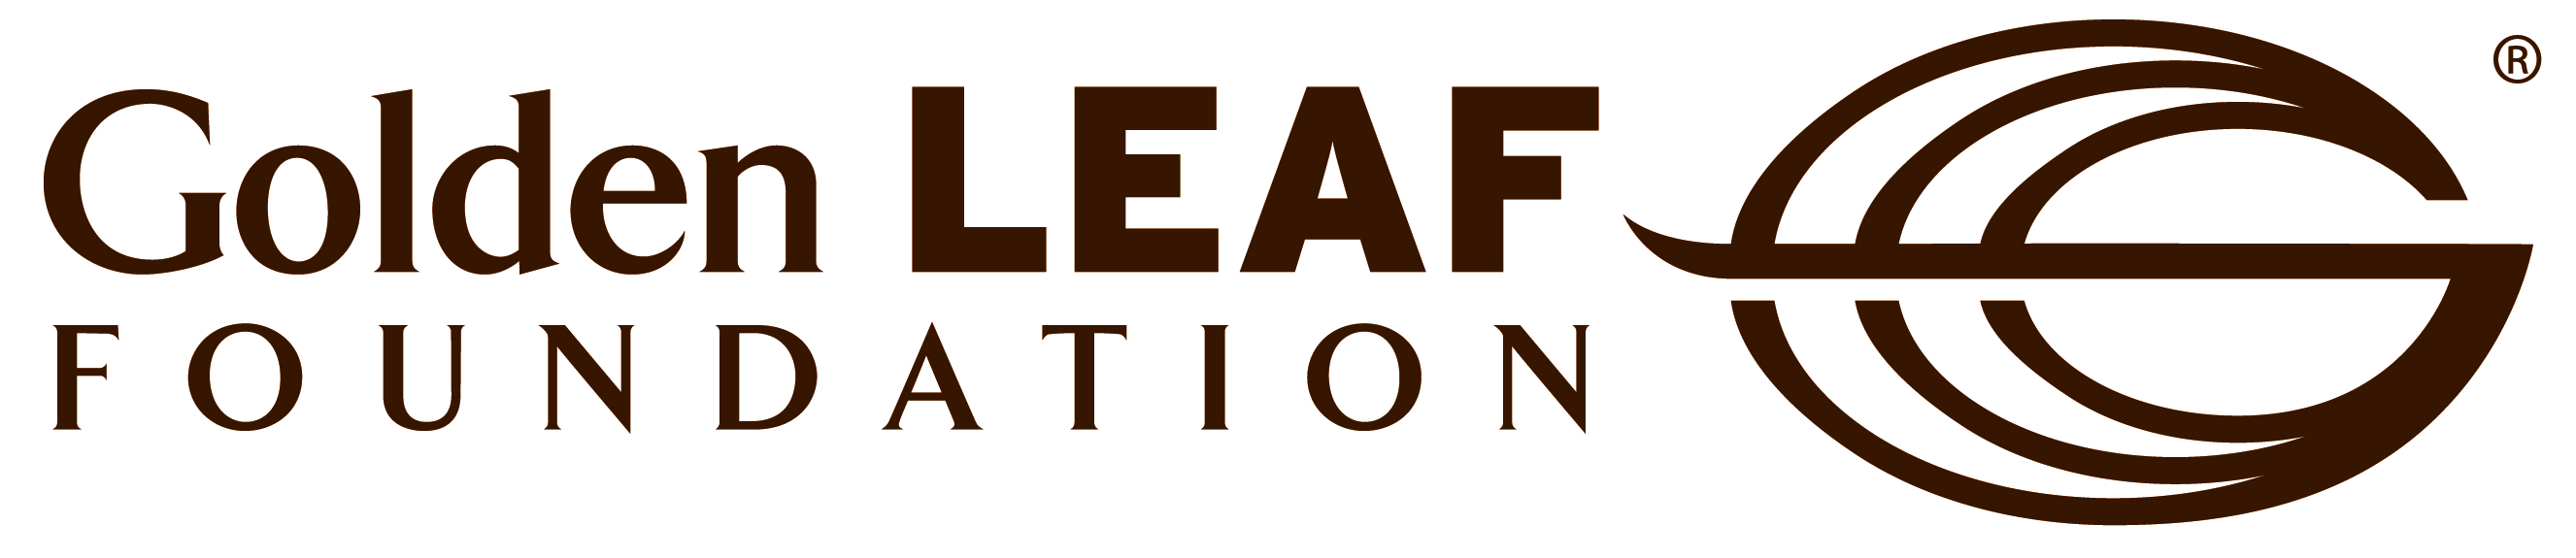 Golden LEaf Foundation logo image